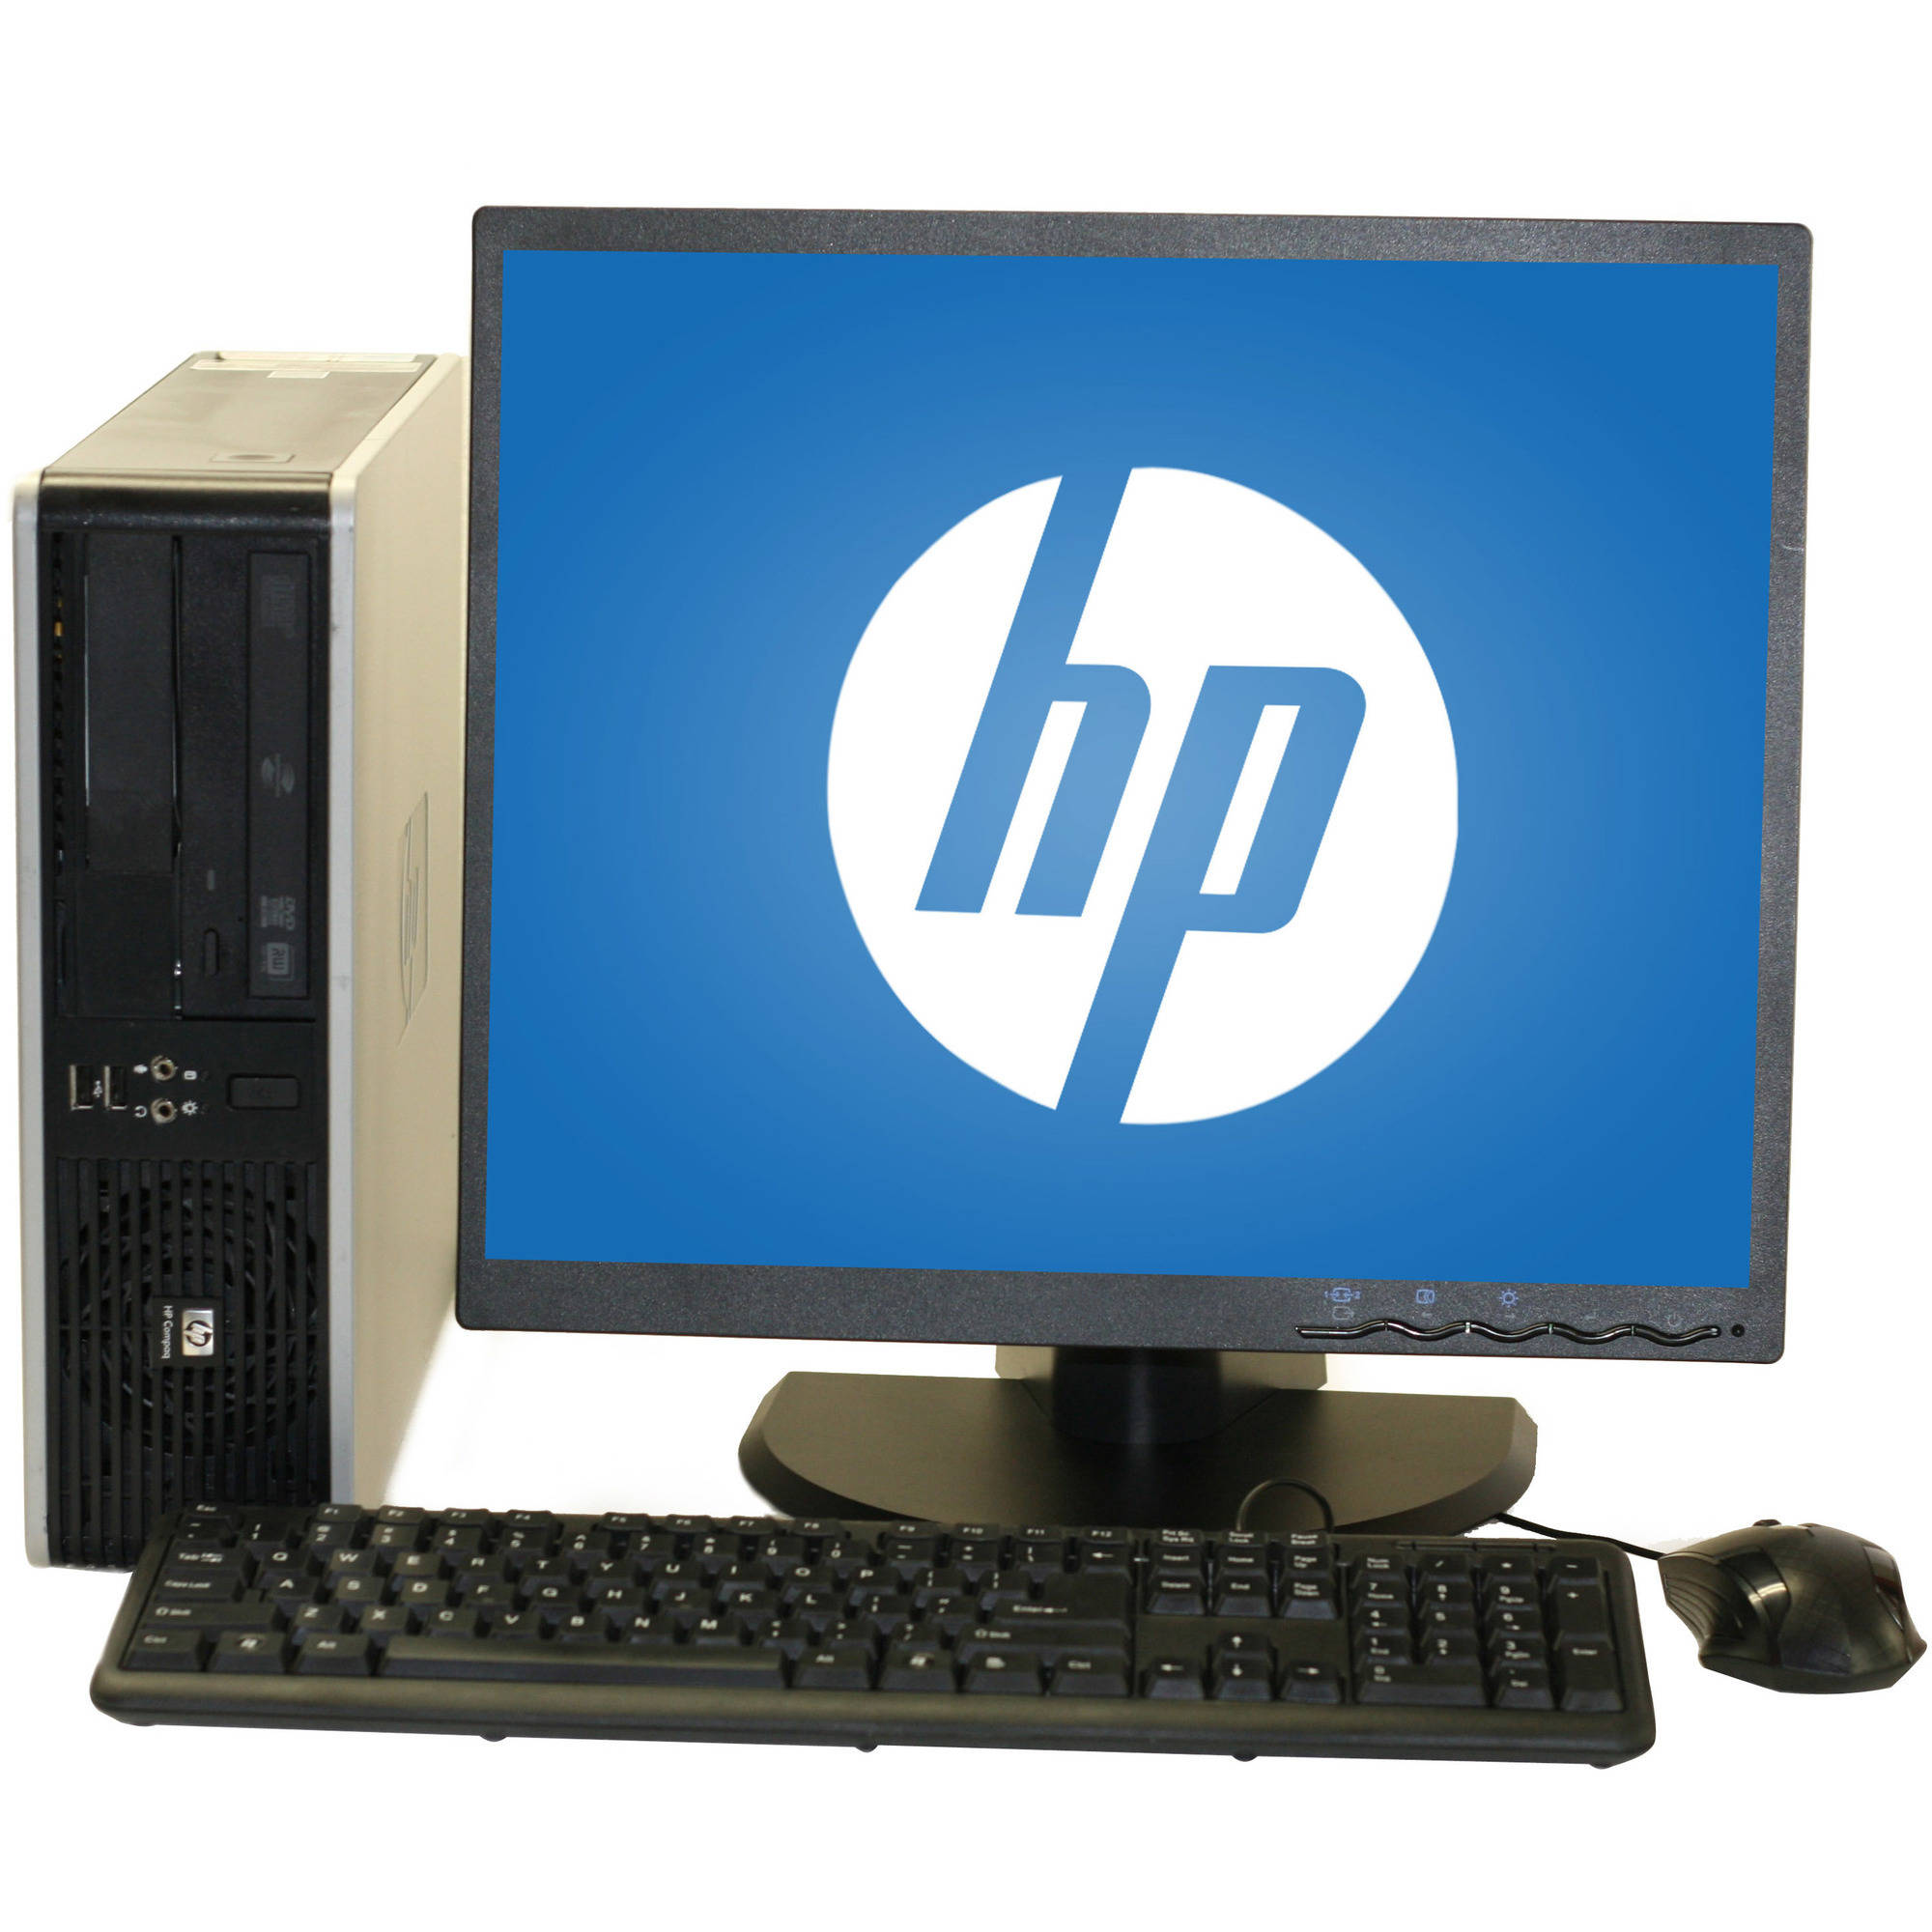 "Refurbished HP 7800 Desktop PC with Intel Core 2 Duo Processor, 4GB Memory, 19"" Monitor, 320GB Hard Drive and Windows 10 Home"